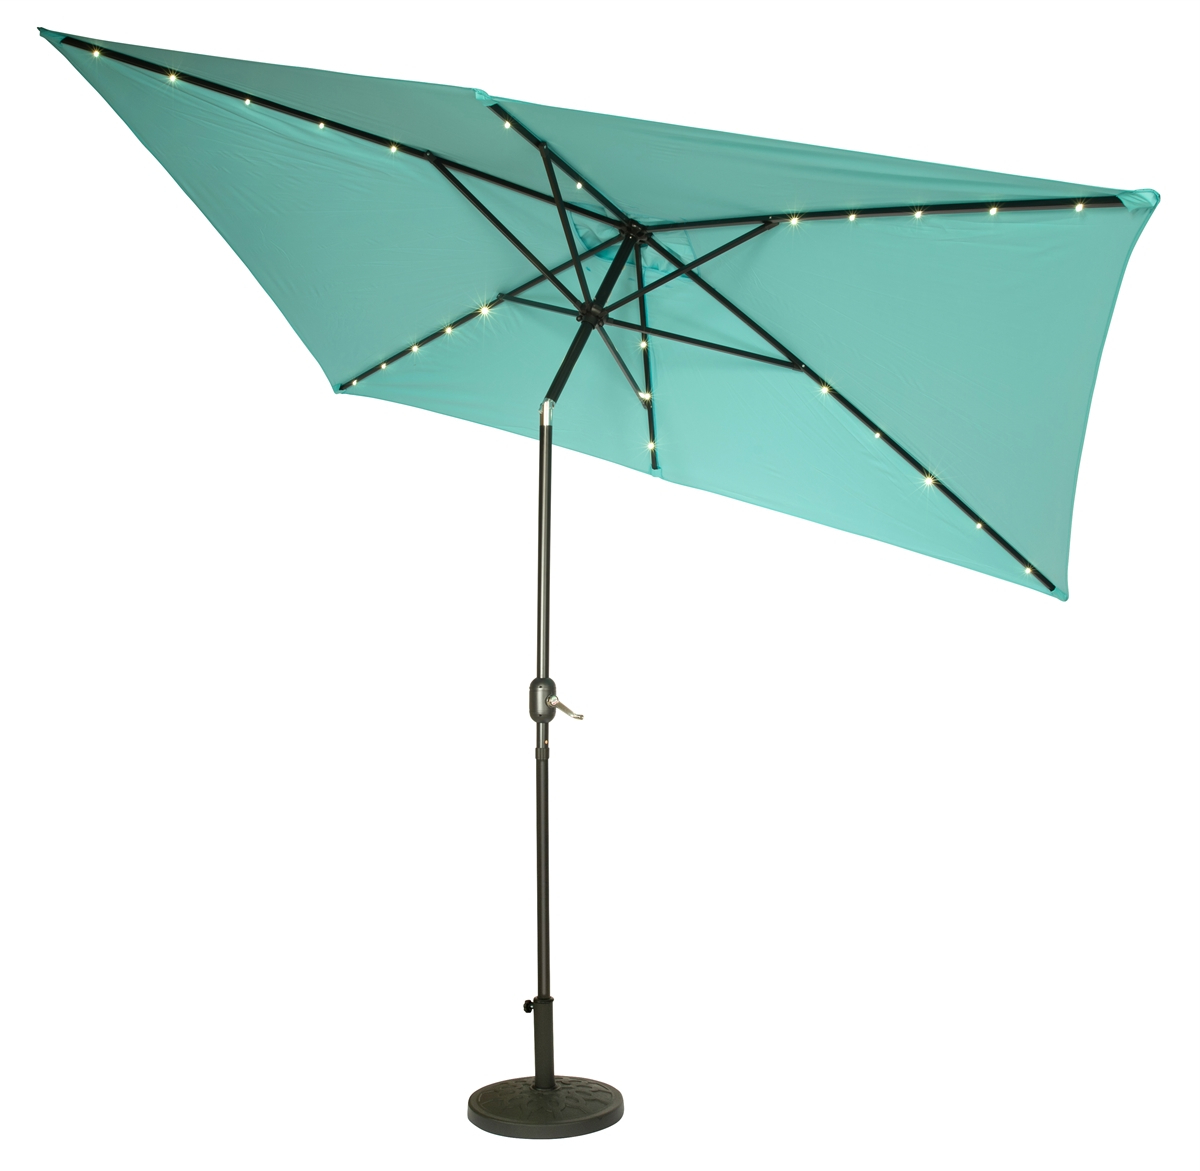 Best And Newest Wiechmann Market Sunbrella Umbrellas With Pretty Rectangle Umbrella Akzprt Akz Plus Cantilever Lowe's Patio (View 2 of 20)